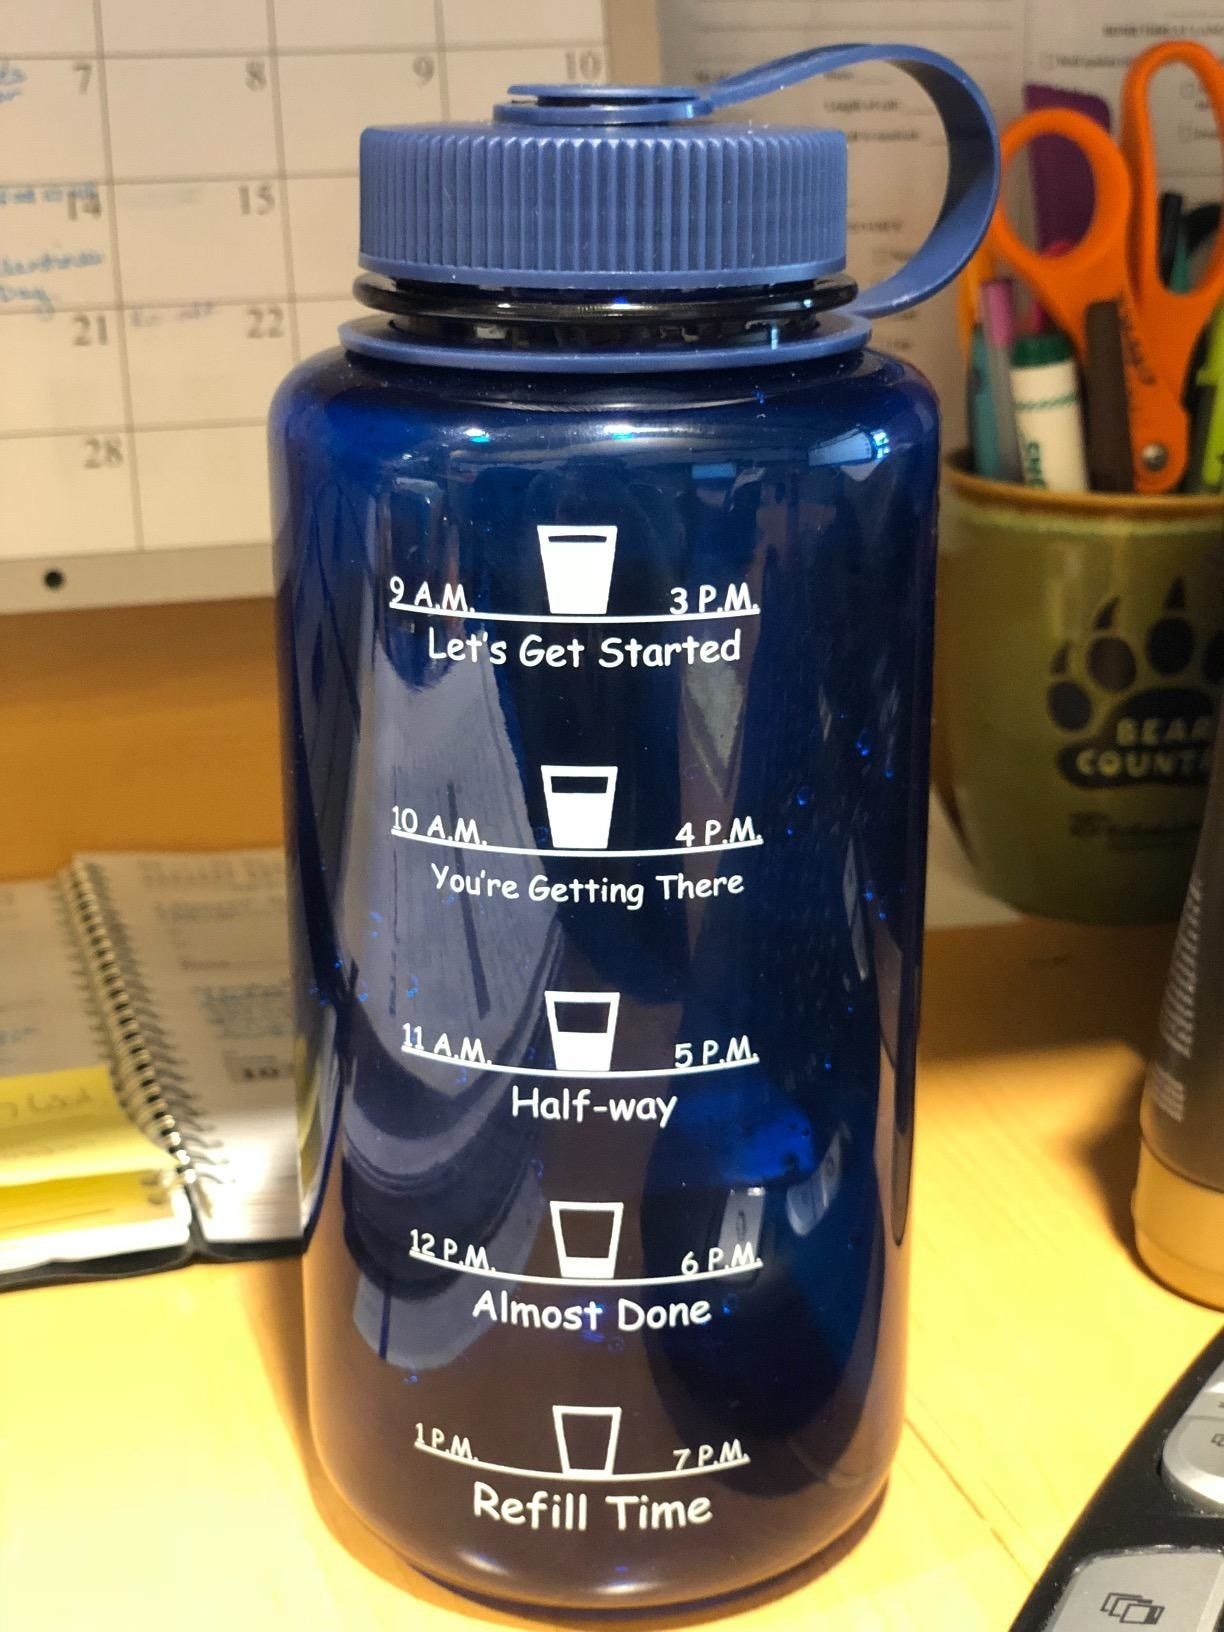 """Reviewer photo of blue time-marked water bottle placed on desk with times ranging from 9 AM to 7PM and text that reads """"Let's Get Started,"""" """"You're Getting There,"""" """"Half-way,"""" """"Almost Done,"""" and """"Refill Time"""""""